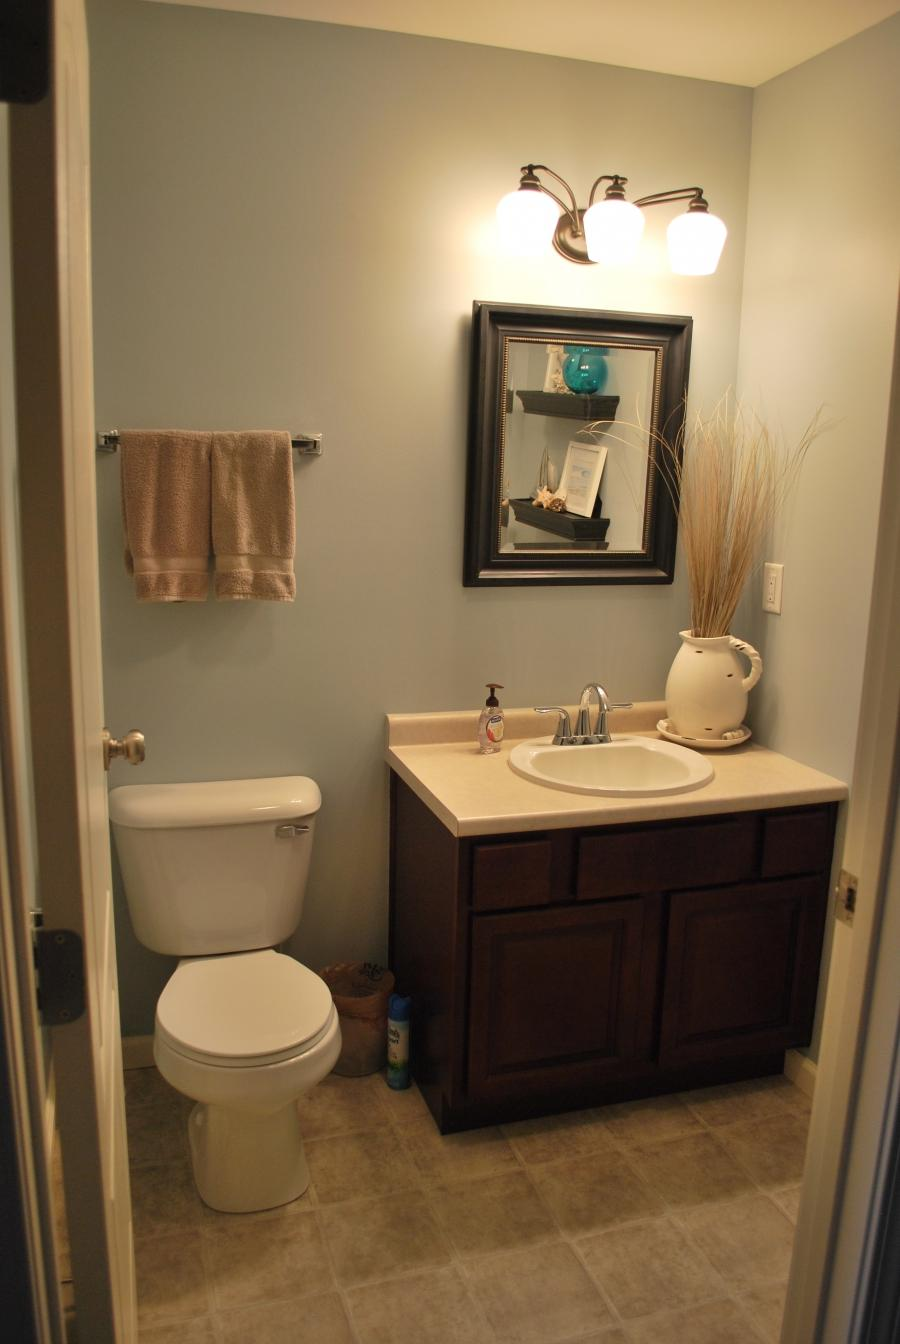 Half bathroom ideas photo gallery for Small bathroom ideas photos gallery